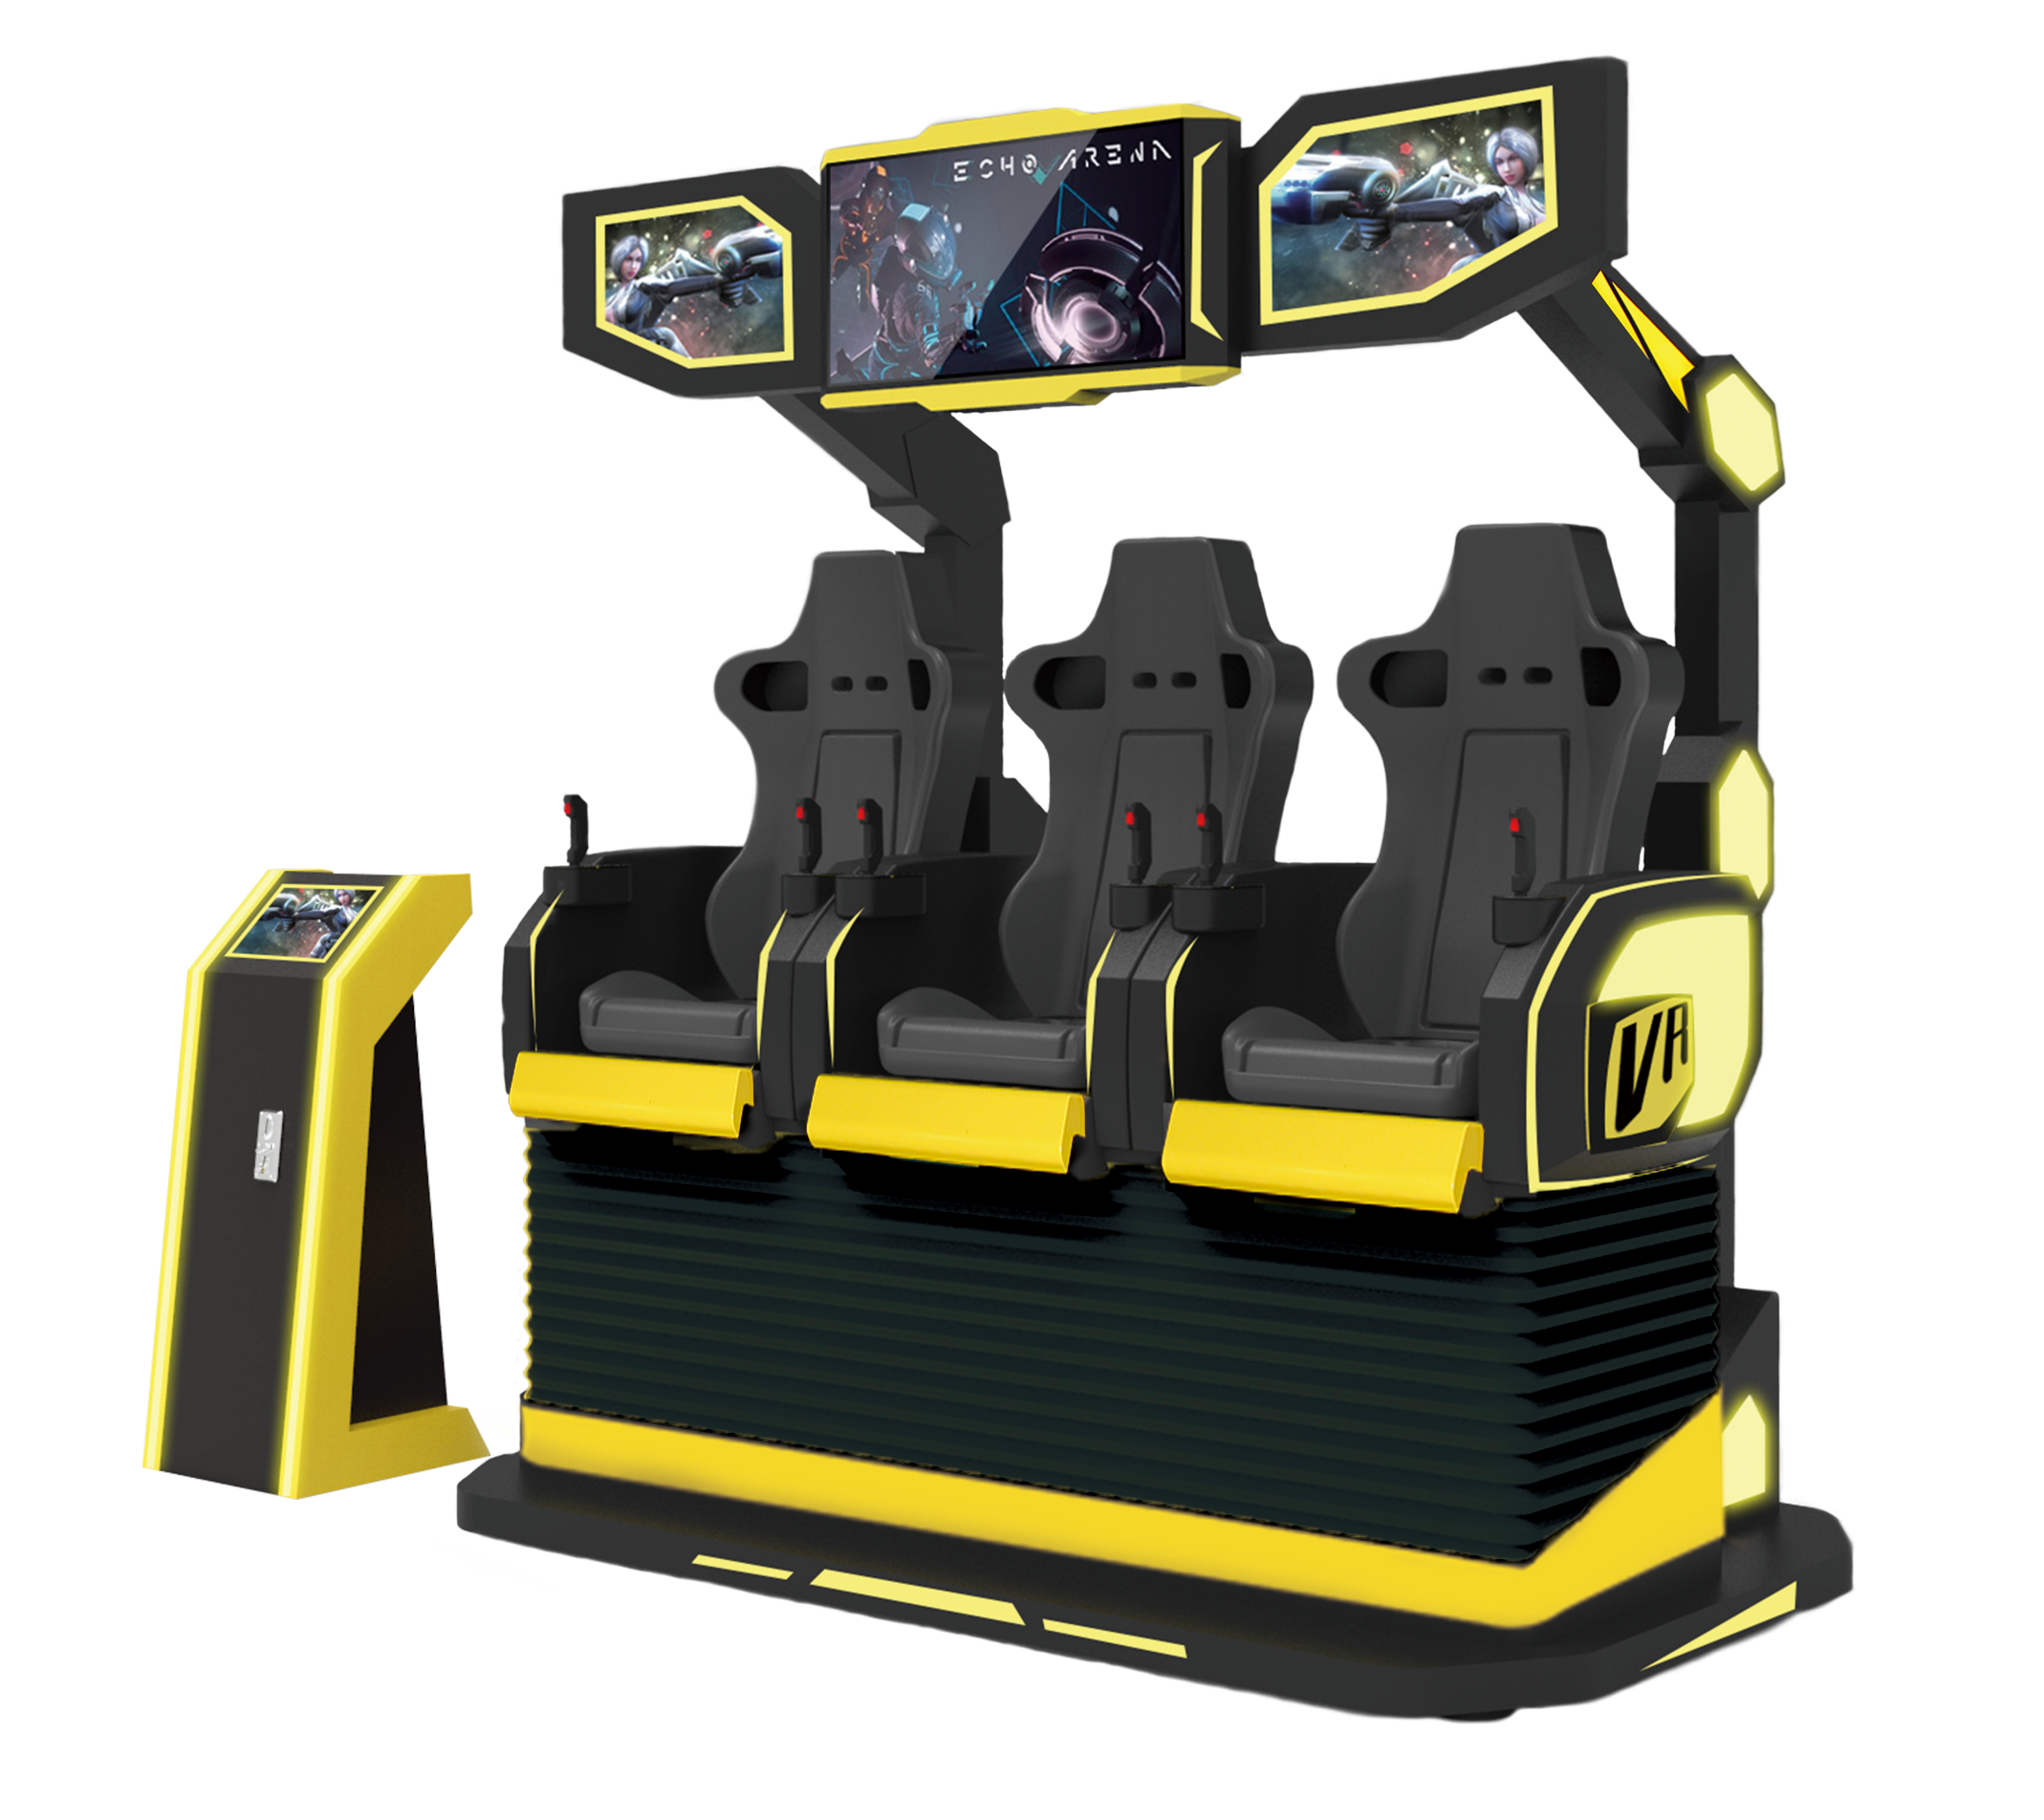 Motion Cinema 9D VR Chair 3 Seats Electric System 7D Theater 5D Game Machine Exclusive appearance